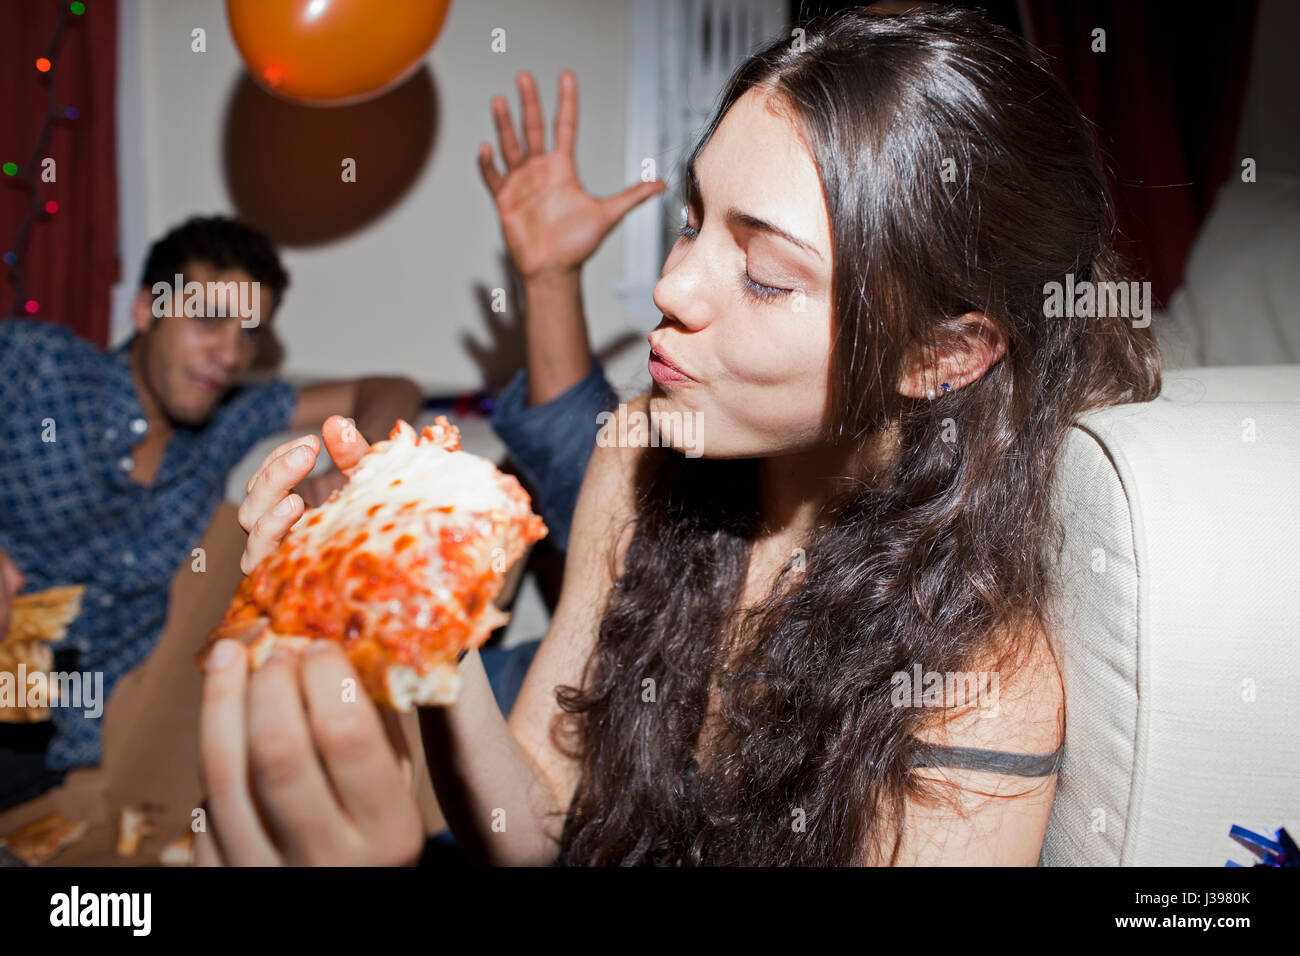 Young woman eating pizza - Stock Image